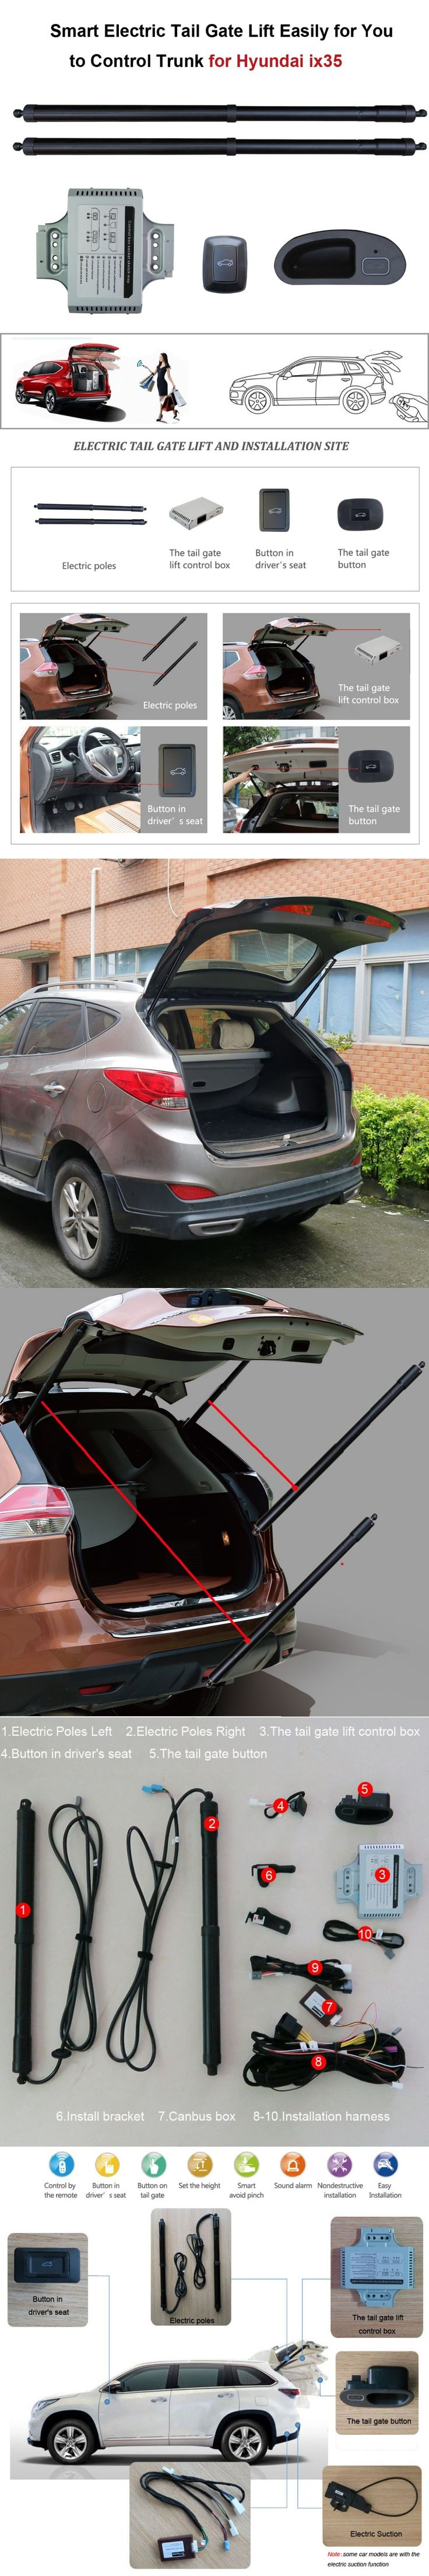 Smart Auto Electric Tail Gate Lift for Hyundai iX35 iX 35 Control by Remote Drive Seat Tail Gate Button Set Height Avoid Pinch